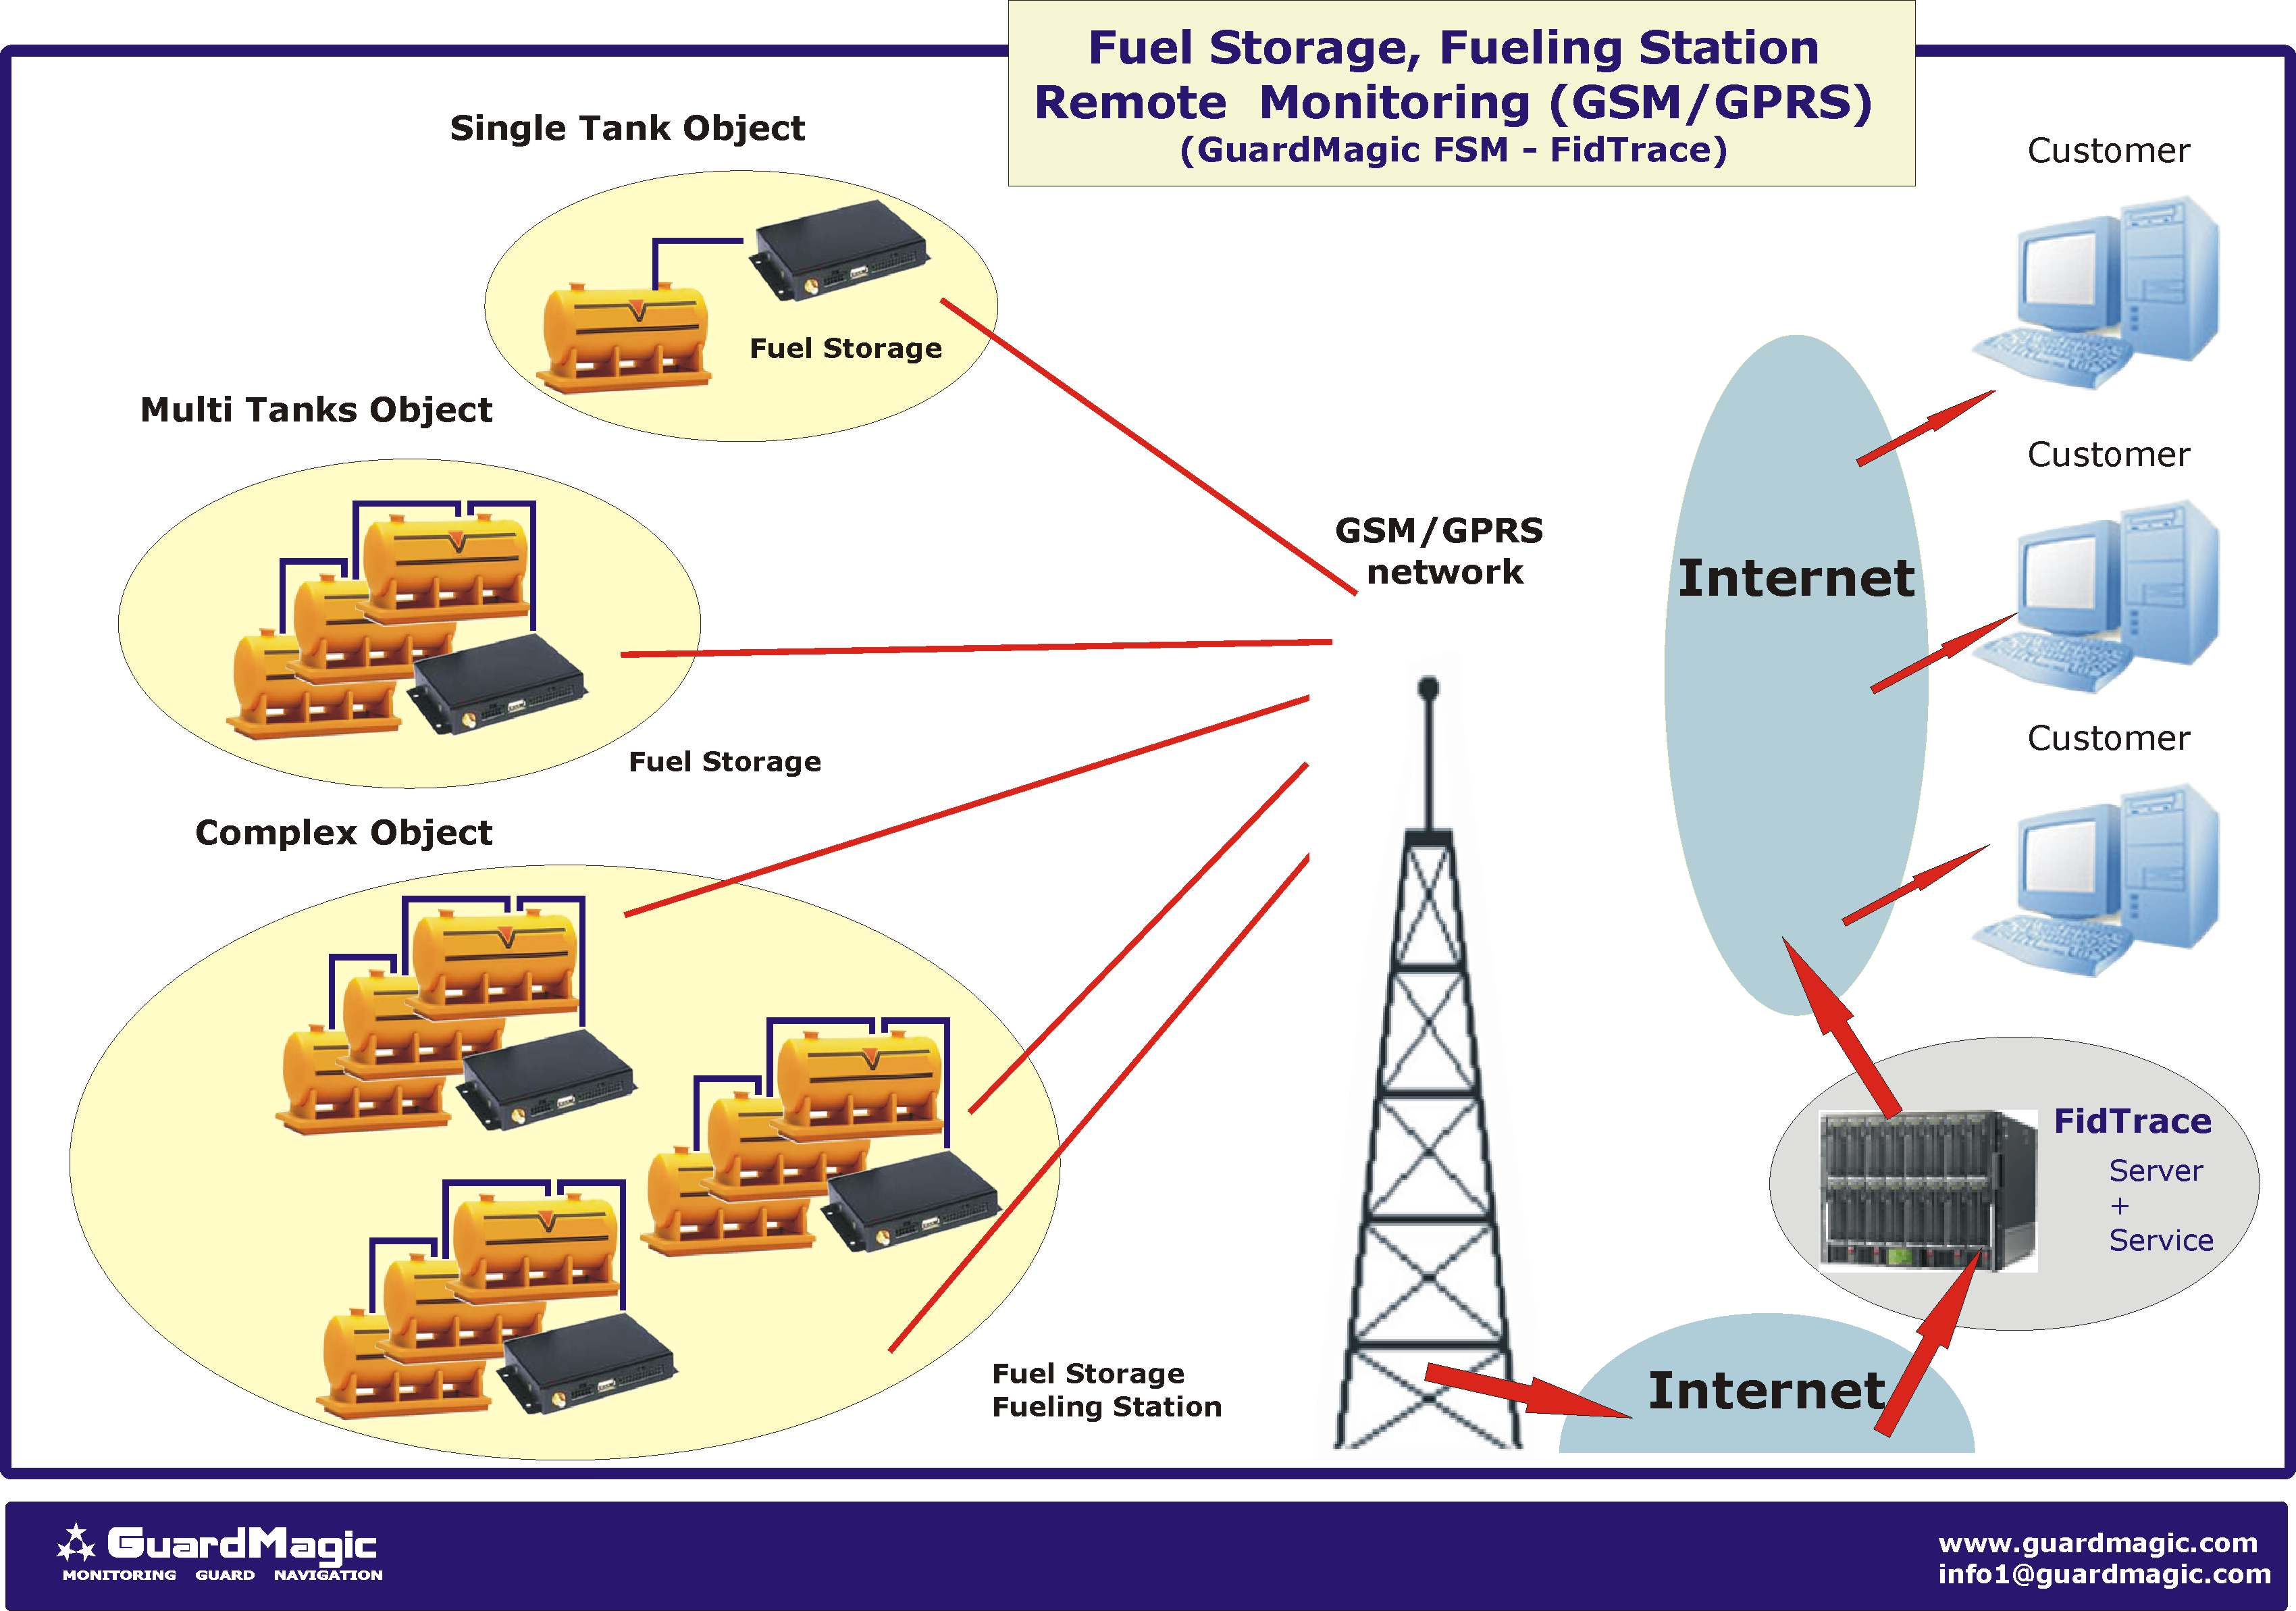 Stationary objects wireless monitoring Fuel storage monitoring